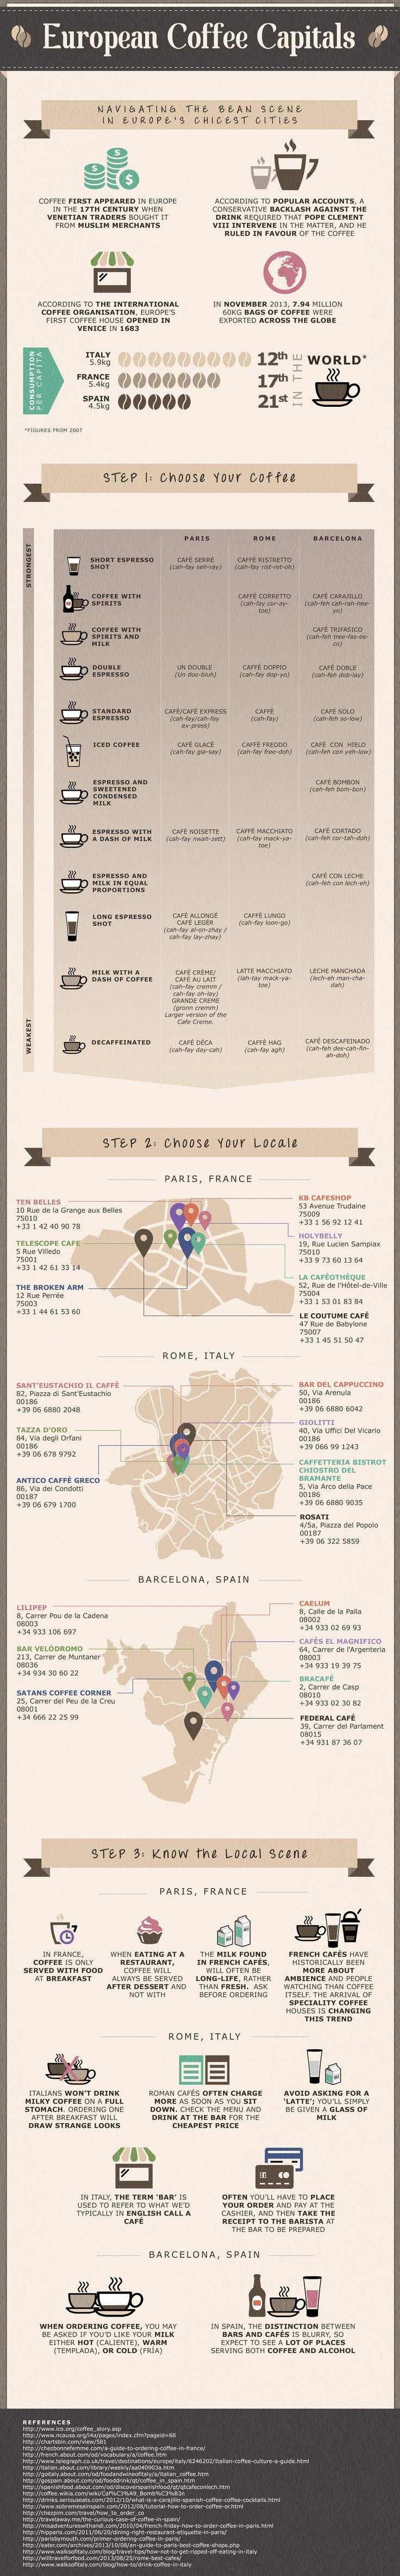 Beware caffeine junkies how to order coffee! Coffee culture in #Paris #Rome and #Barcelona